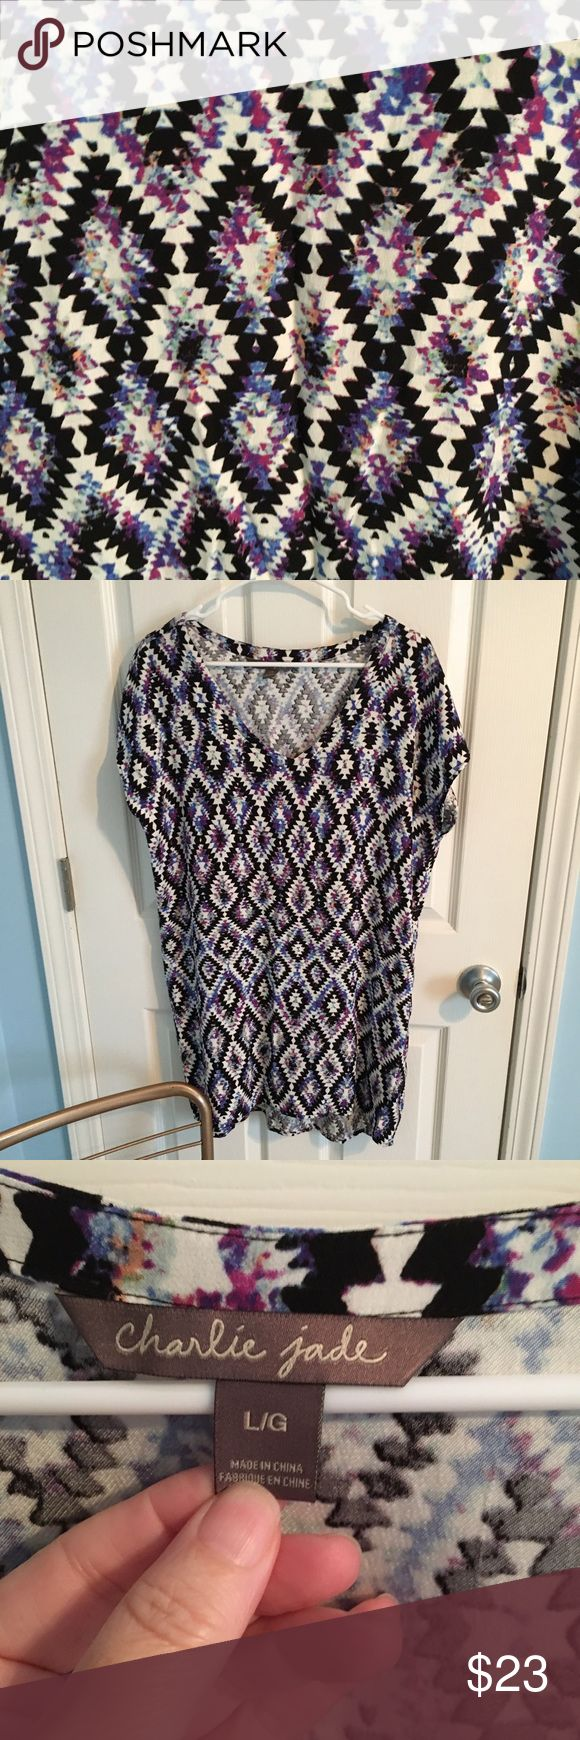 Anthropologie Charlie Jade geometric tunic large Anthropologie Charlie Jade geometric print tunic, large, beautiful flows and free, would look awesome with skinny pants, excellent condition Charlie Jade Tops Tunics